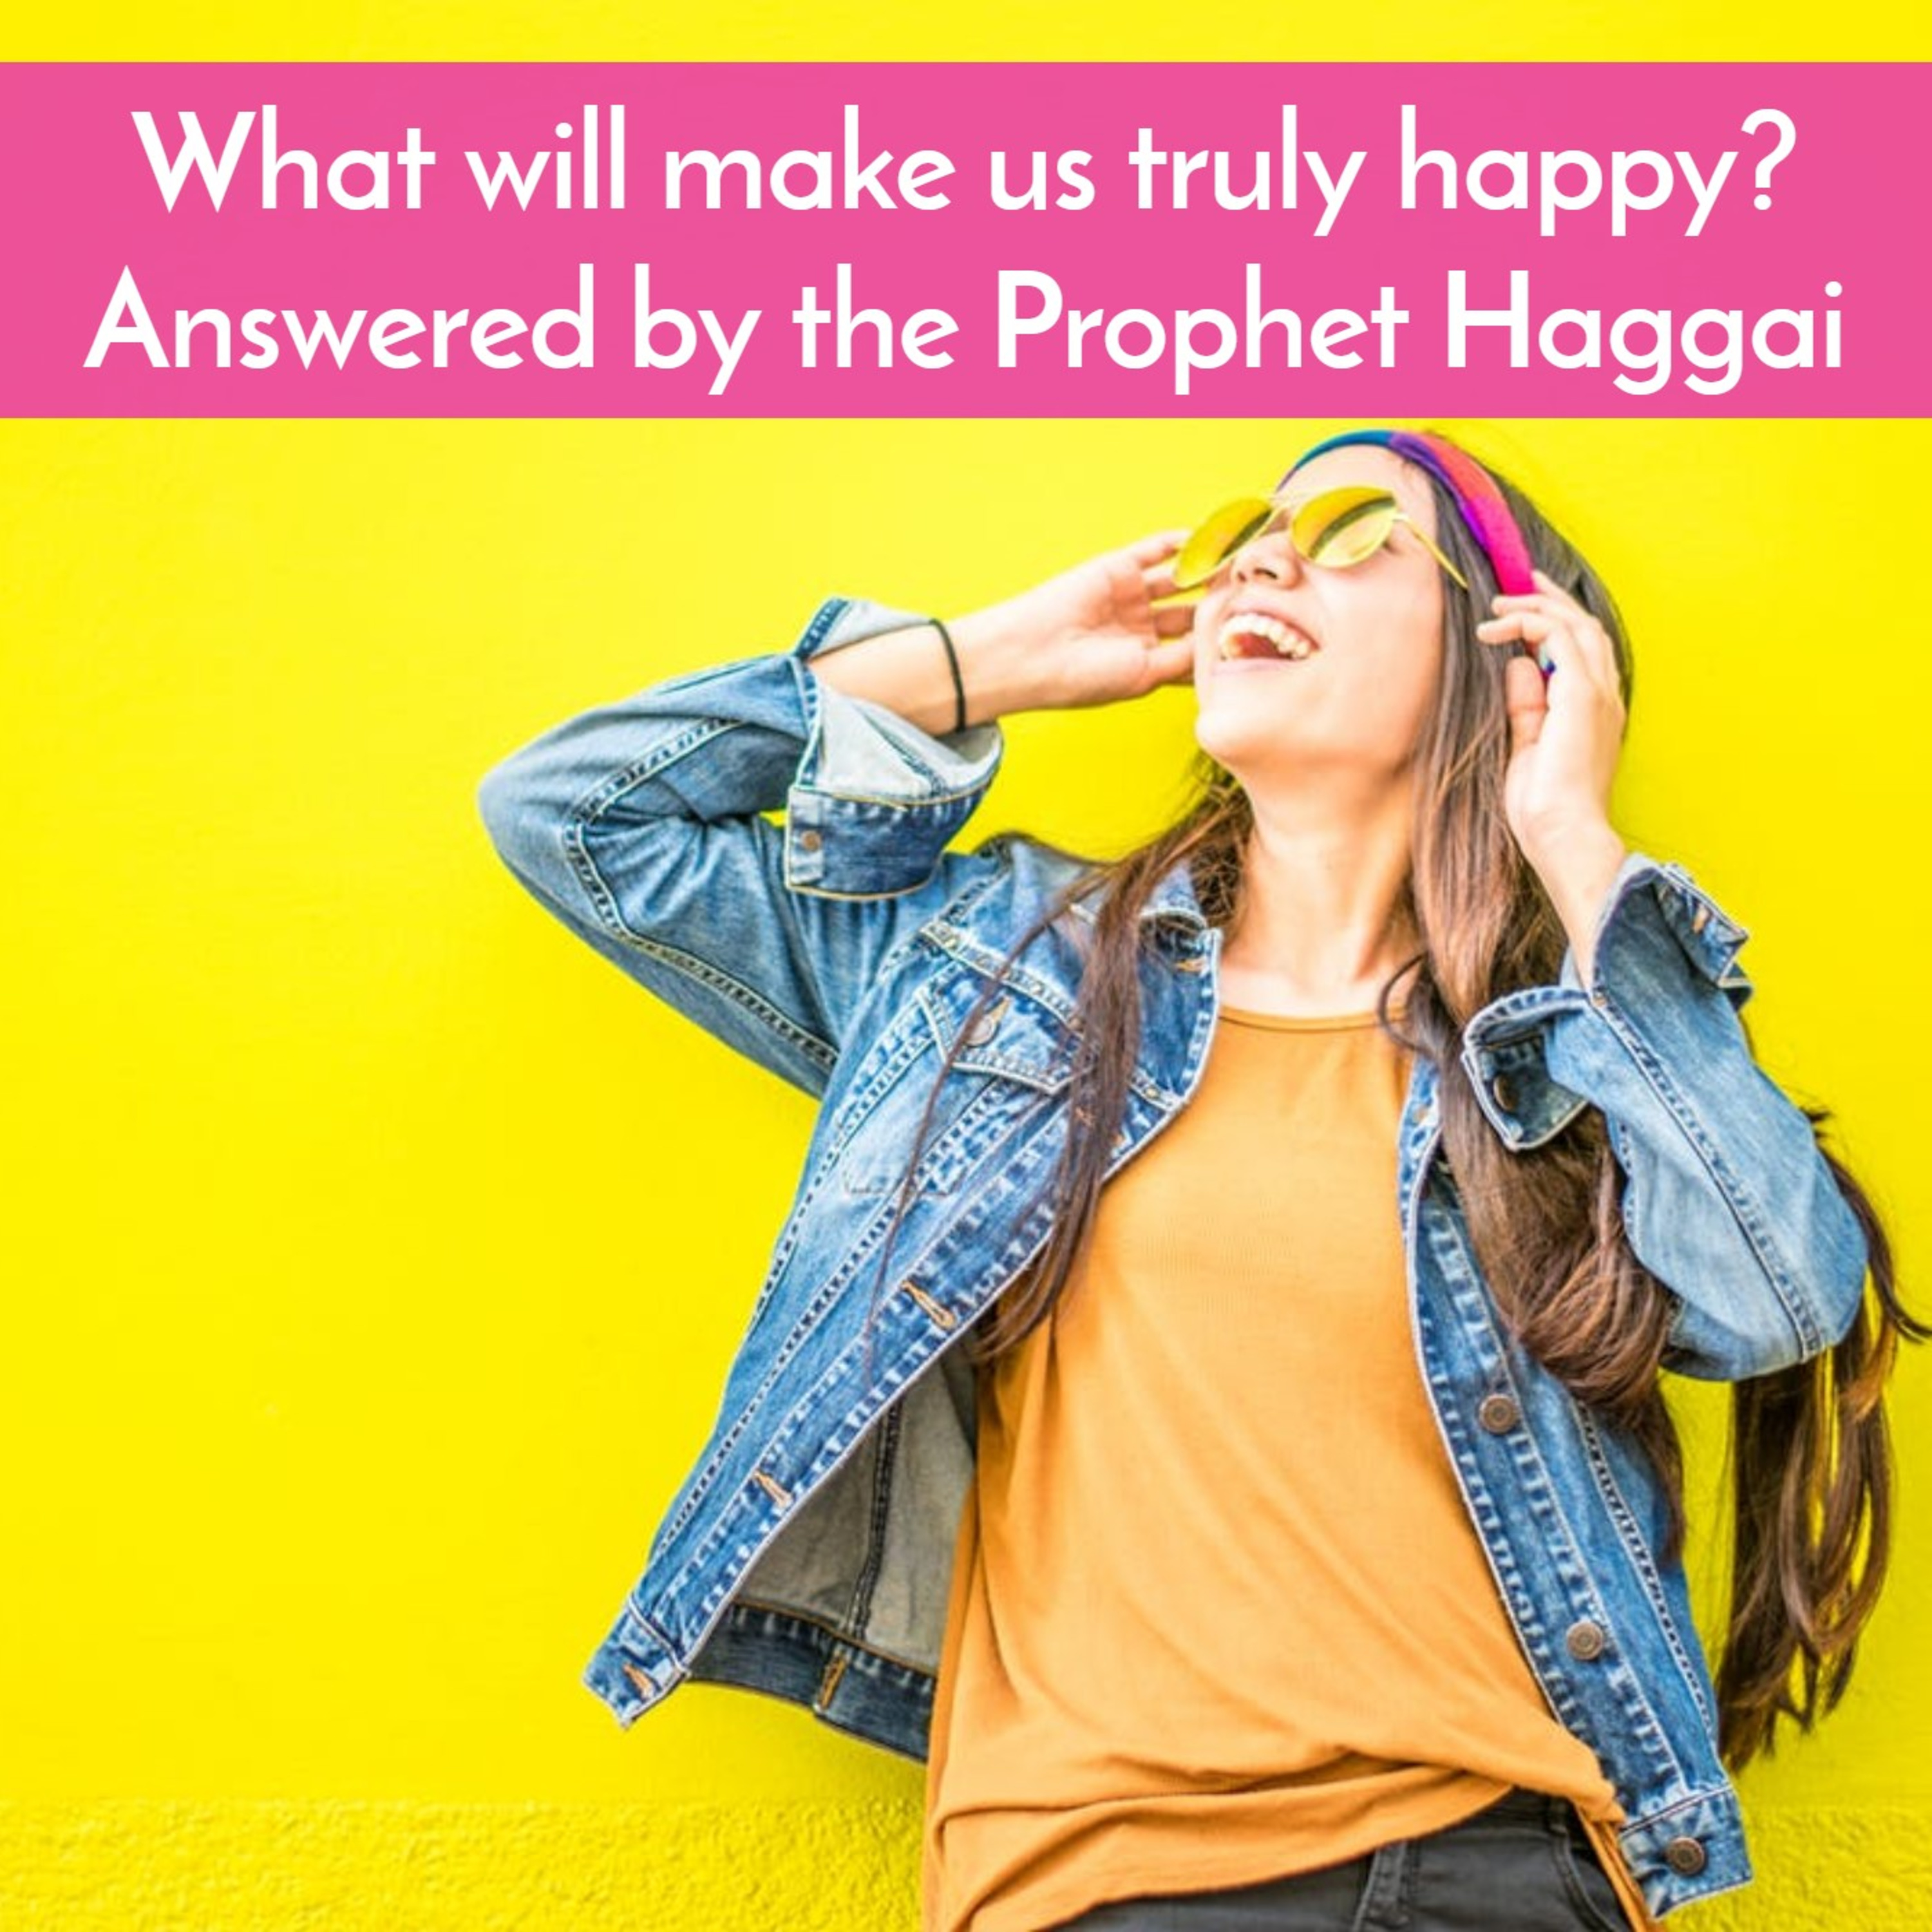 #50 What will make us truly happy? Answered by the Prophet Haggai